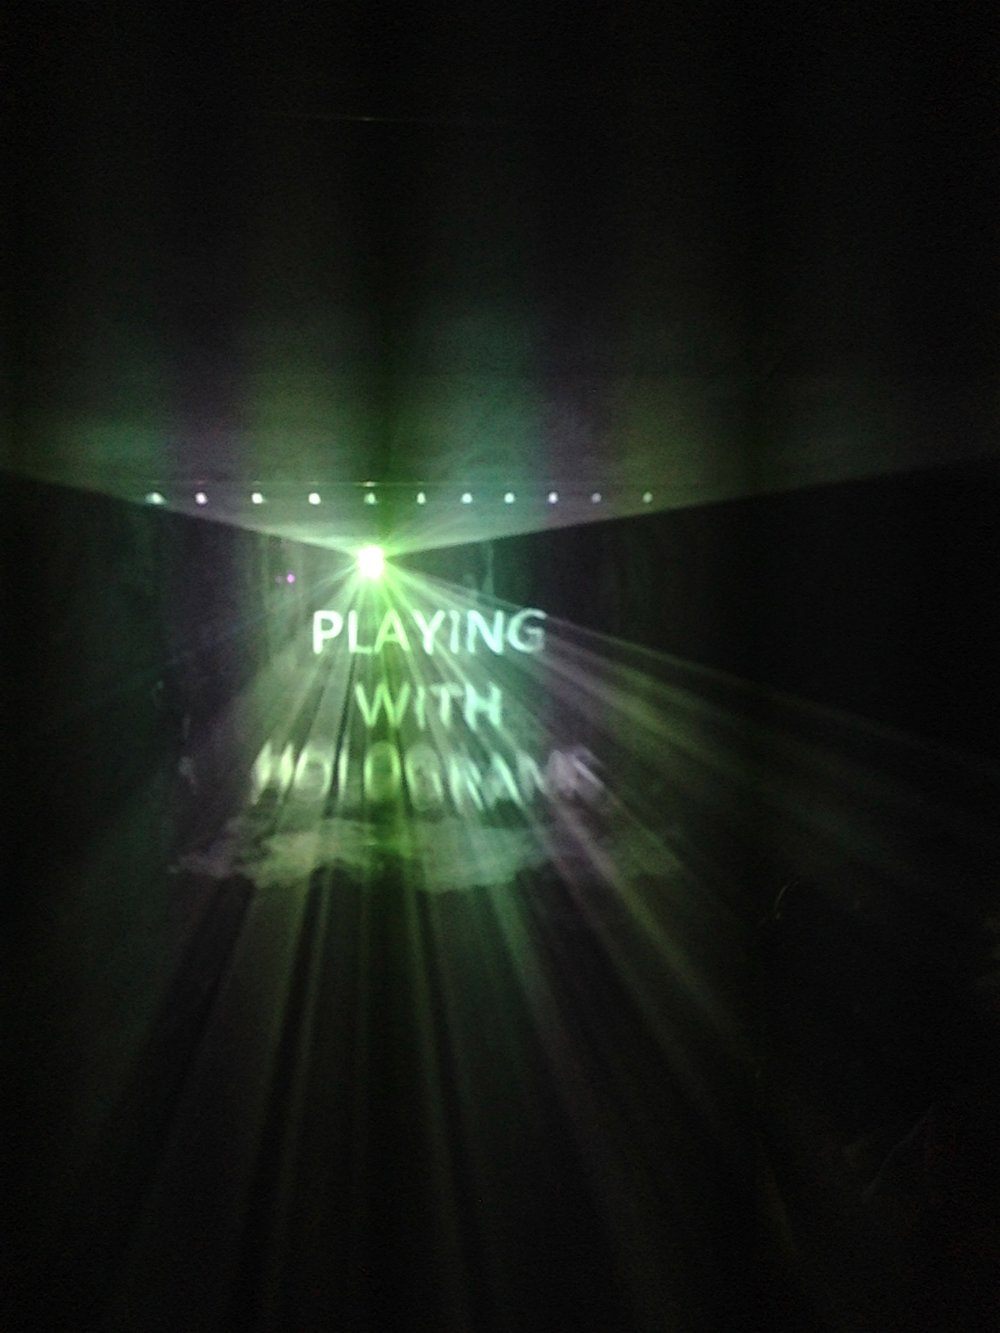 Playing with Holograms